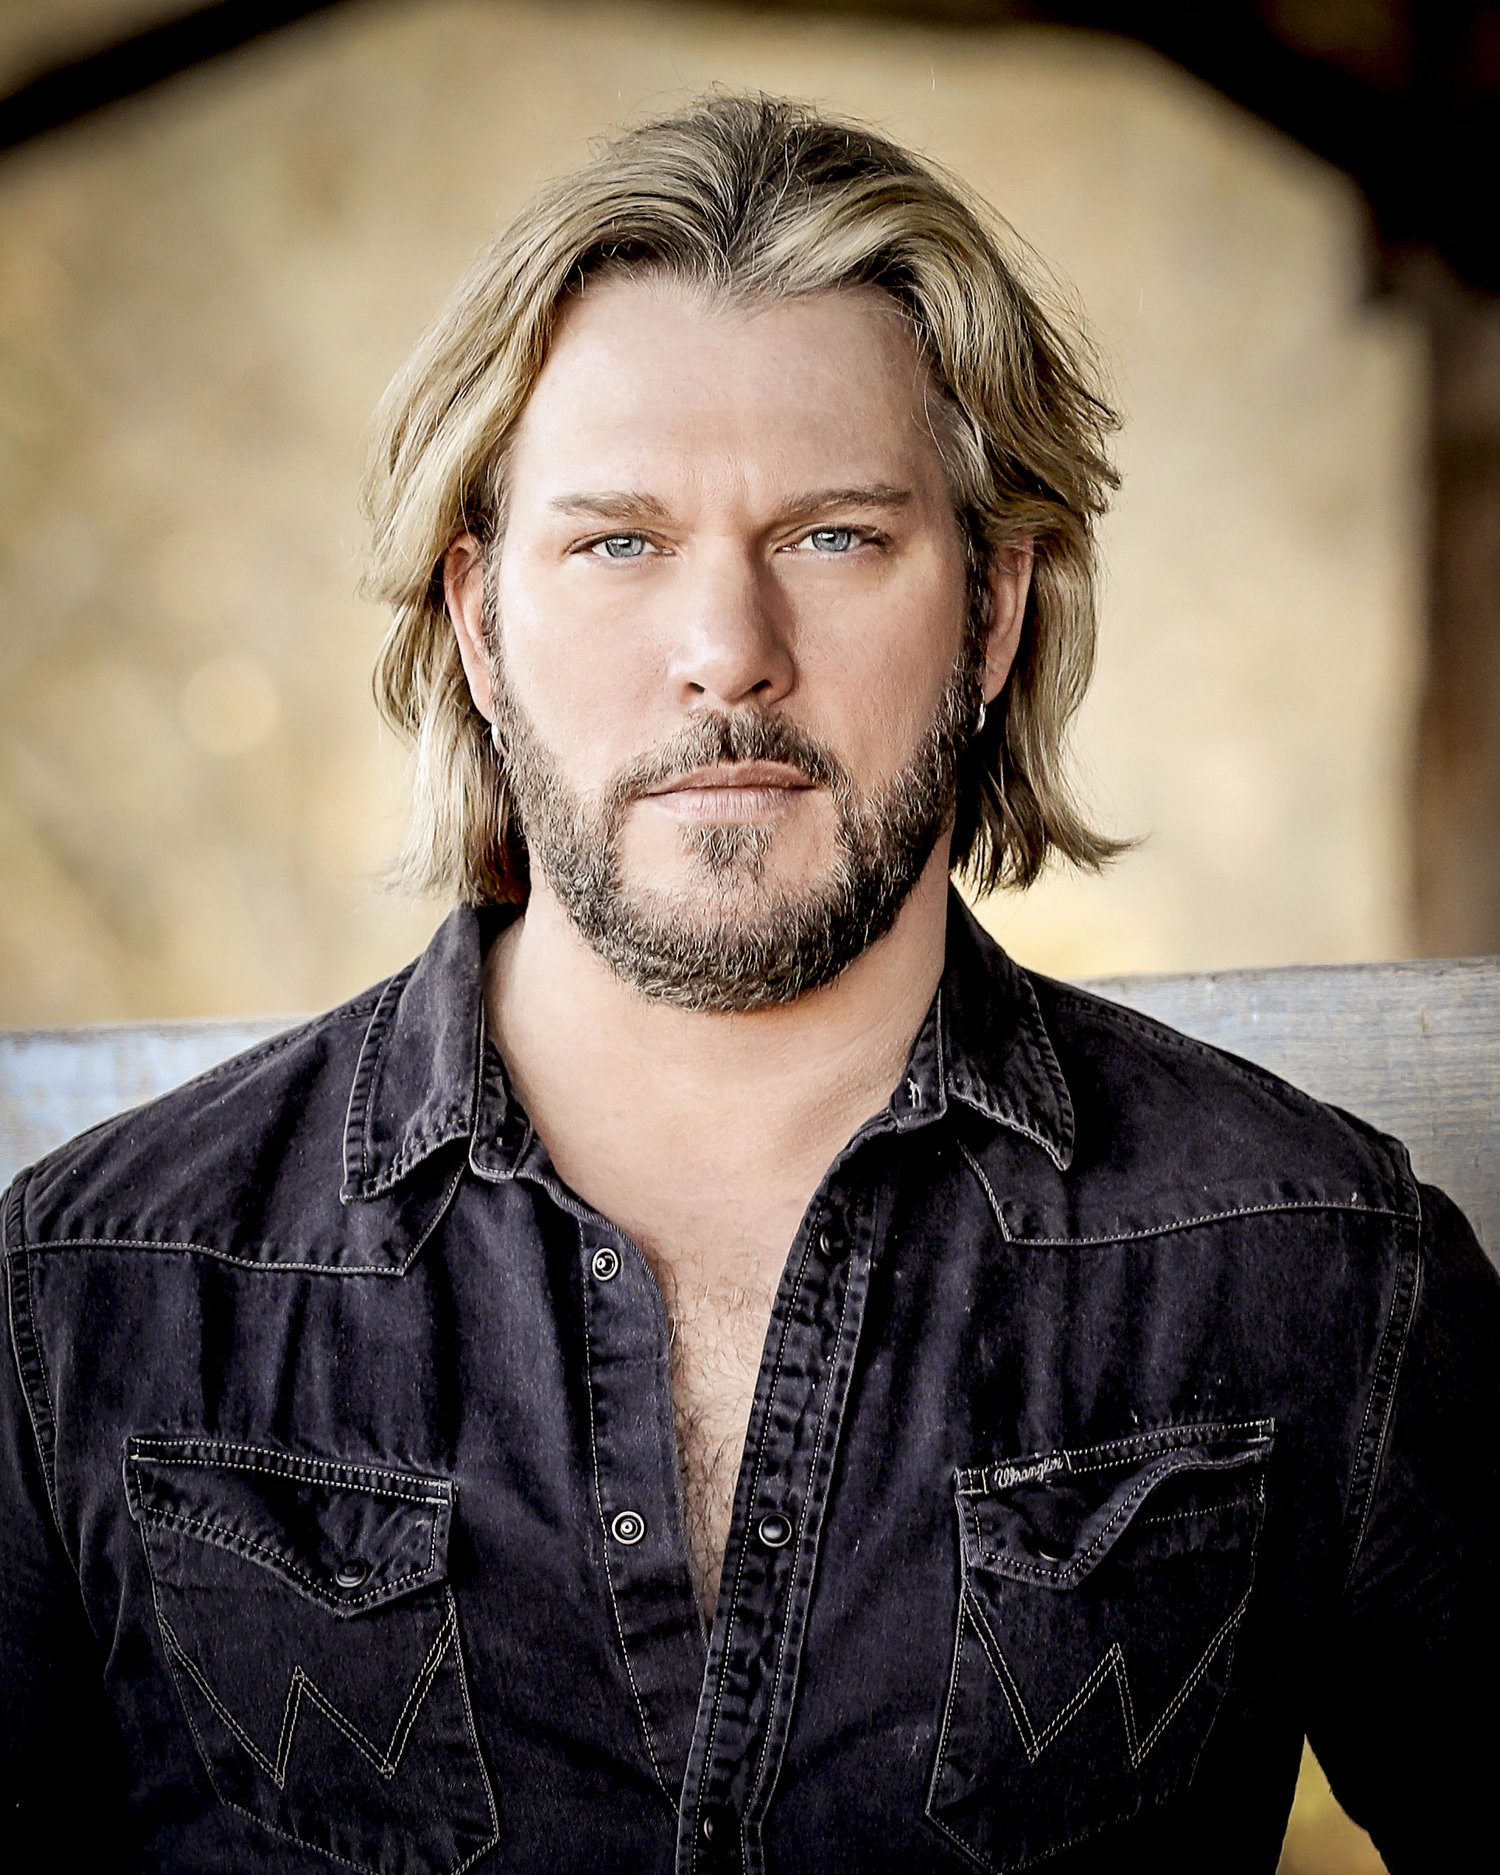 Craig Wayne Boyd Phone number, Email Id, Fanmail, Instagram, Tiktok, and Contact Details